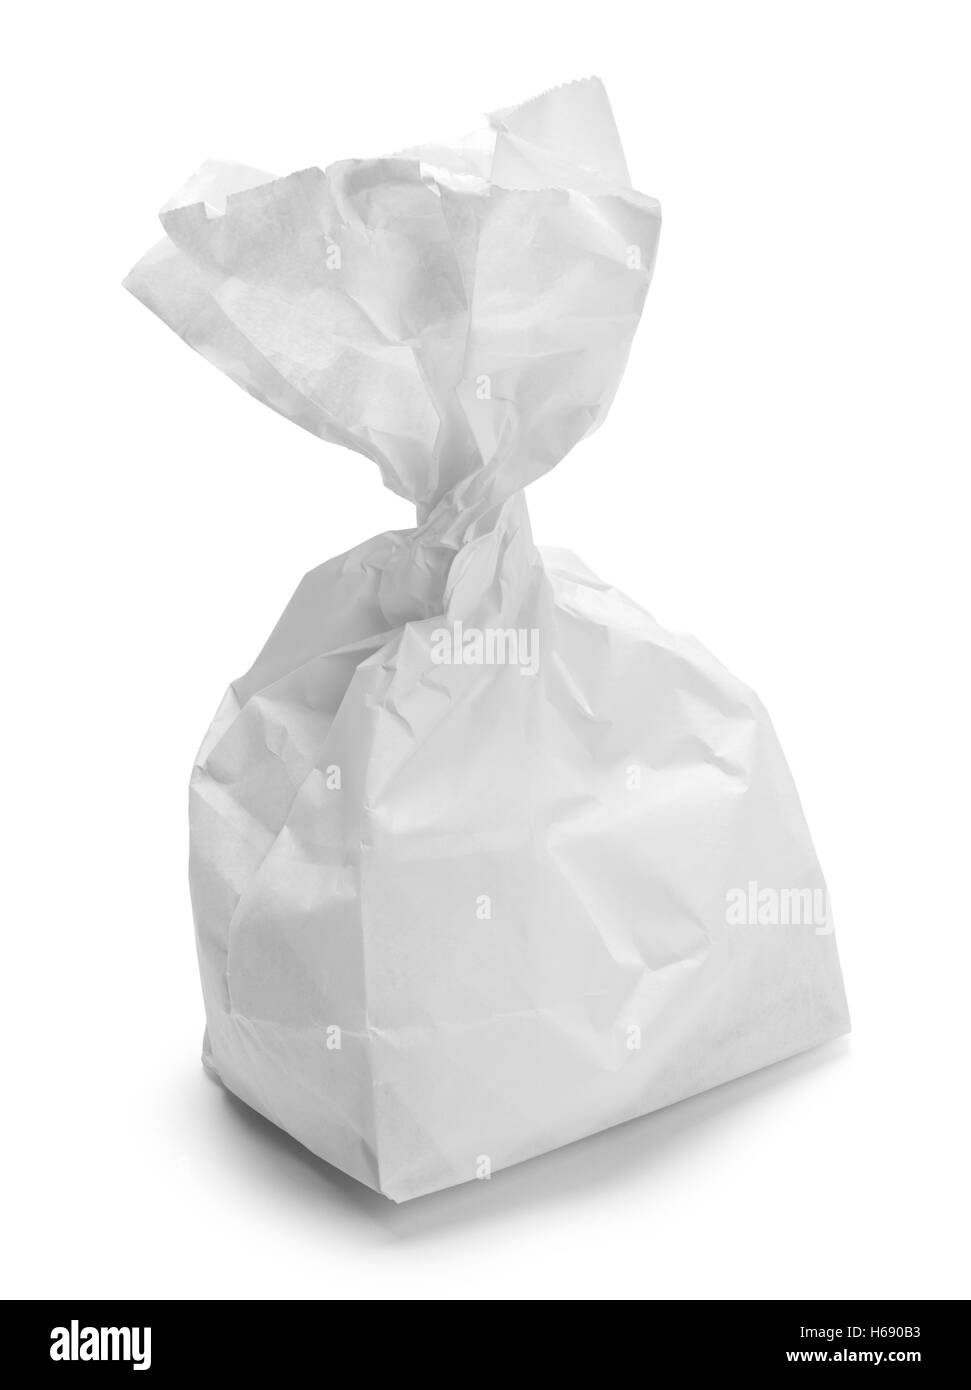 Twisted White Lunch Bag Isolated on White Background. - Stock Image